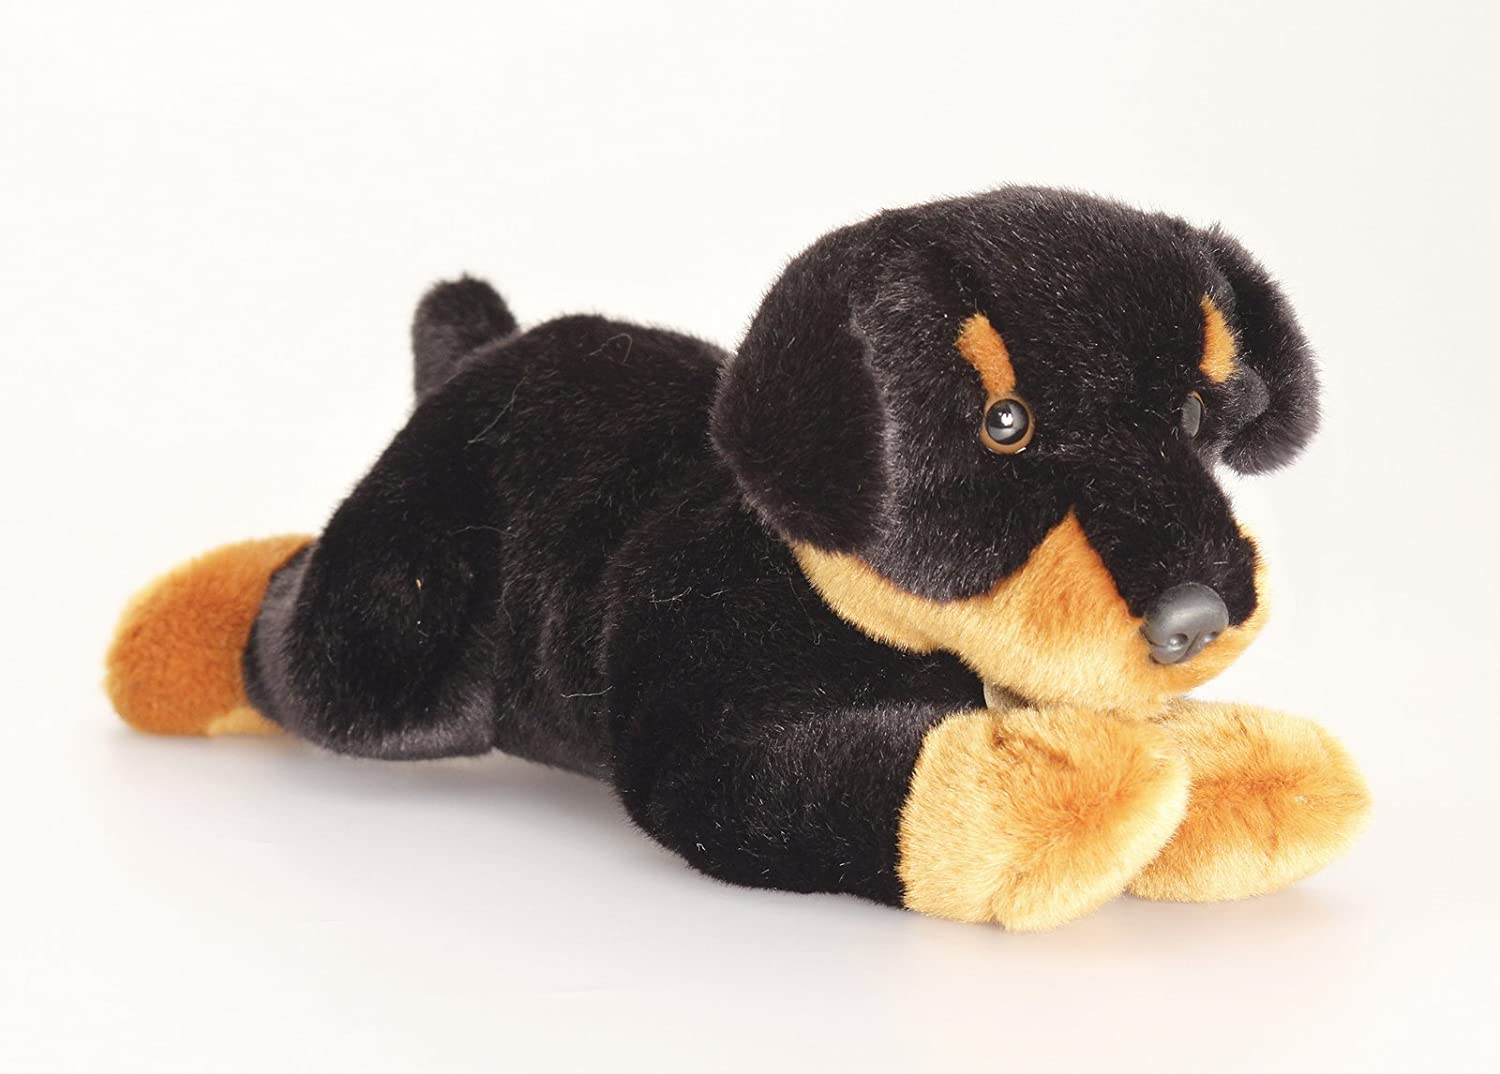 Keel Toys Cuddly Plush 35cm Rottweiler Dog Soft Toy Called Reggie Co Uk Games